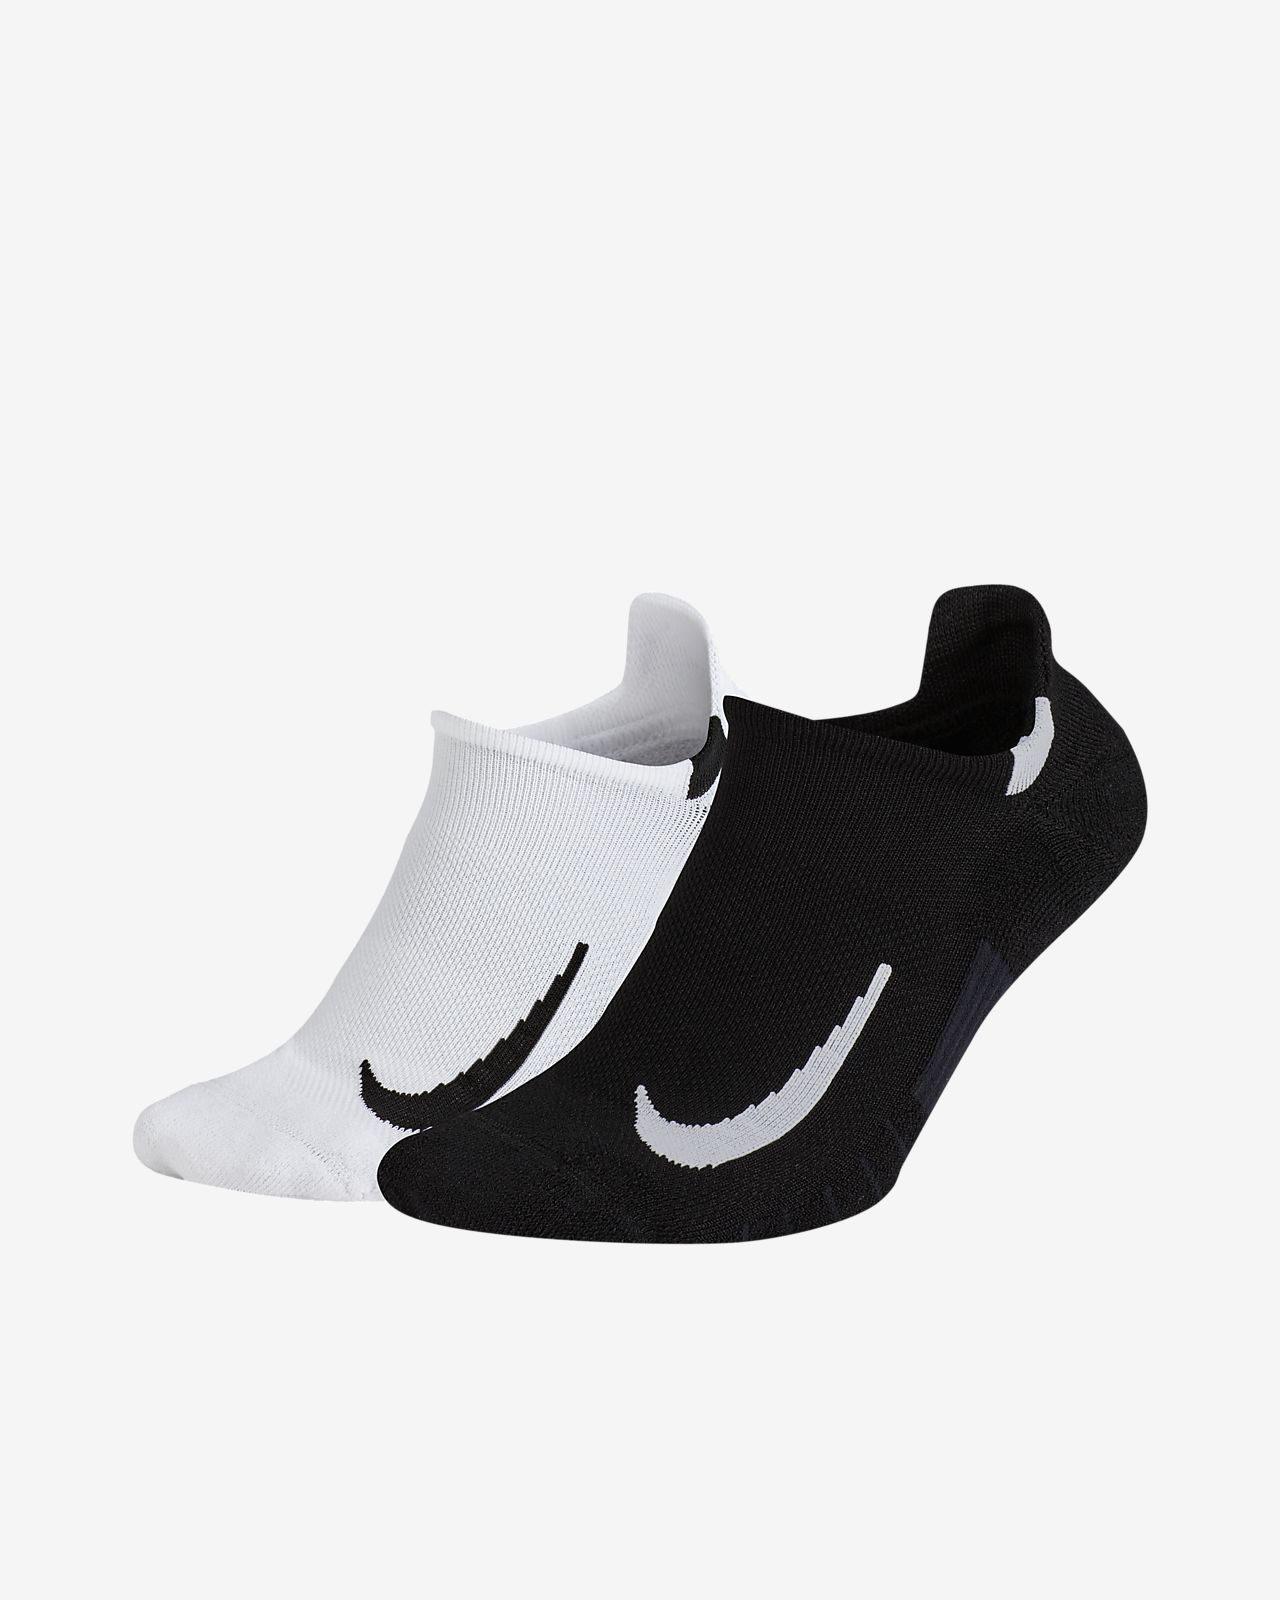 Nike Multiplier No-Show Socks (2 Pair)